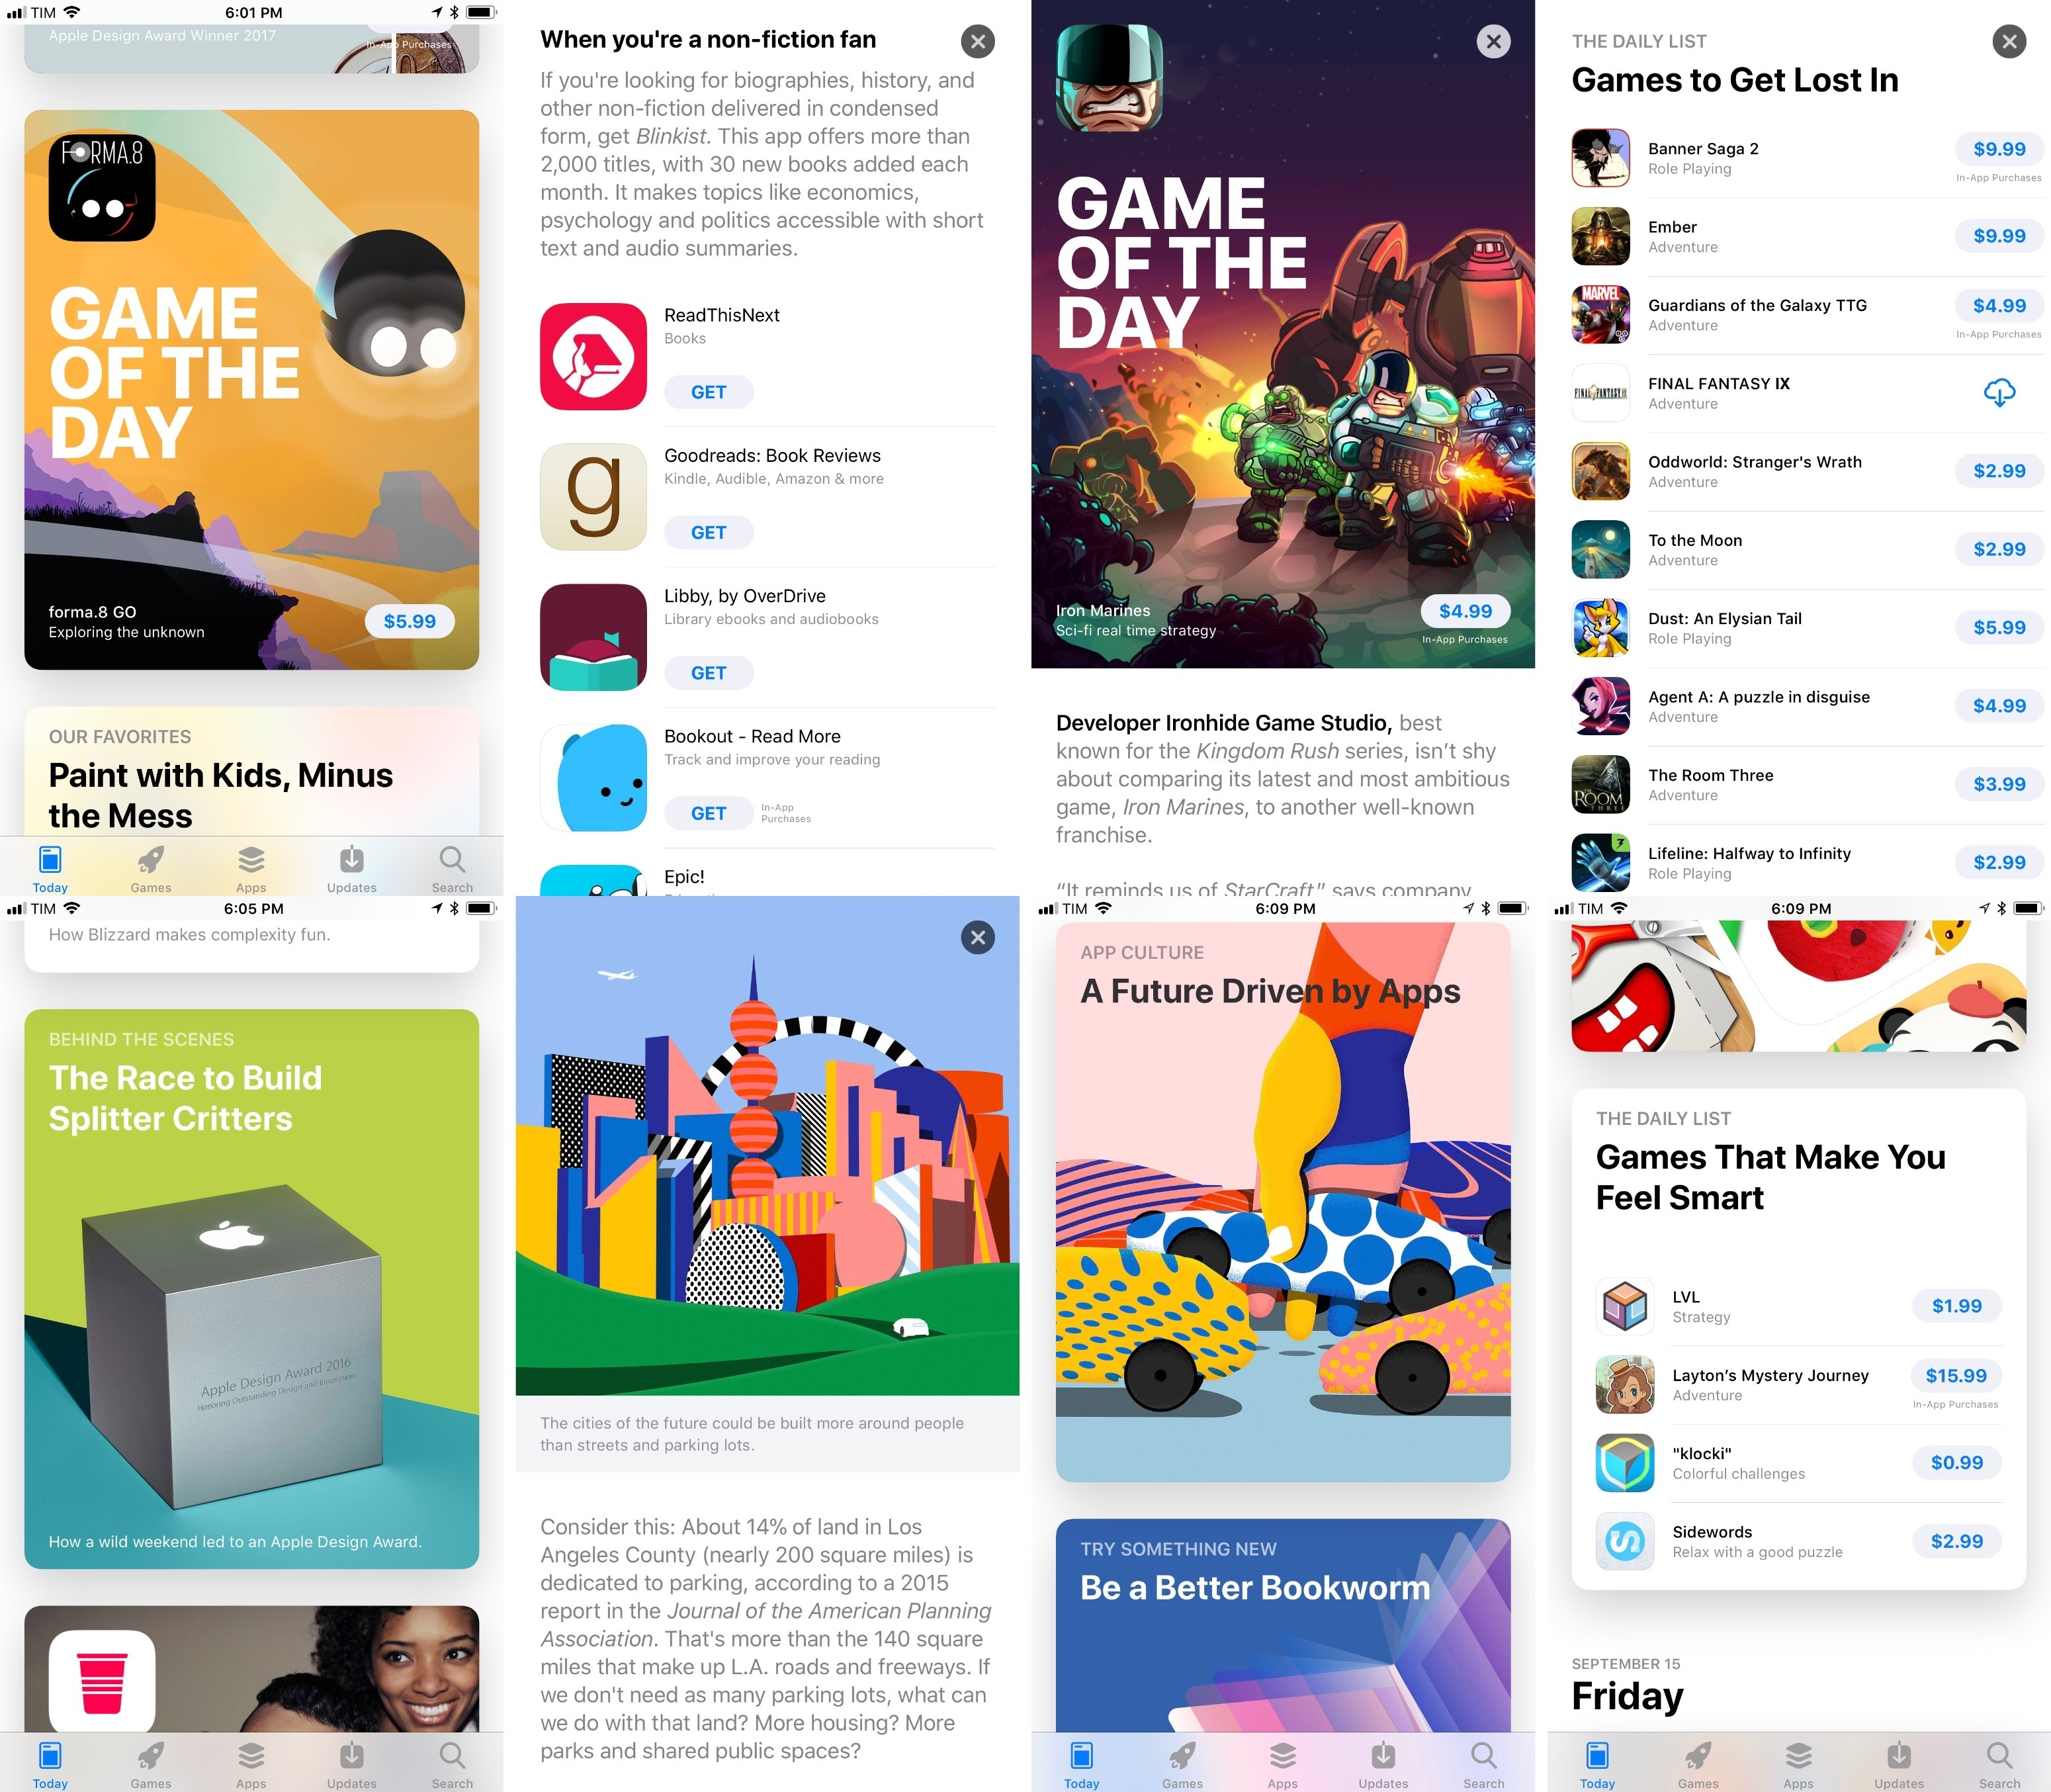 Examples of stories from the iOS 11 App Store.